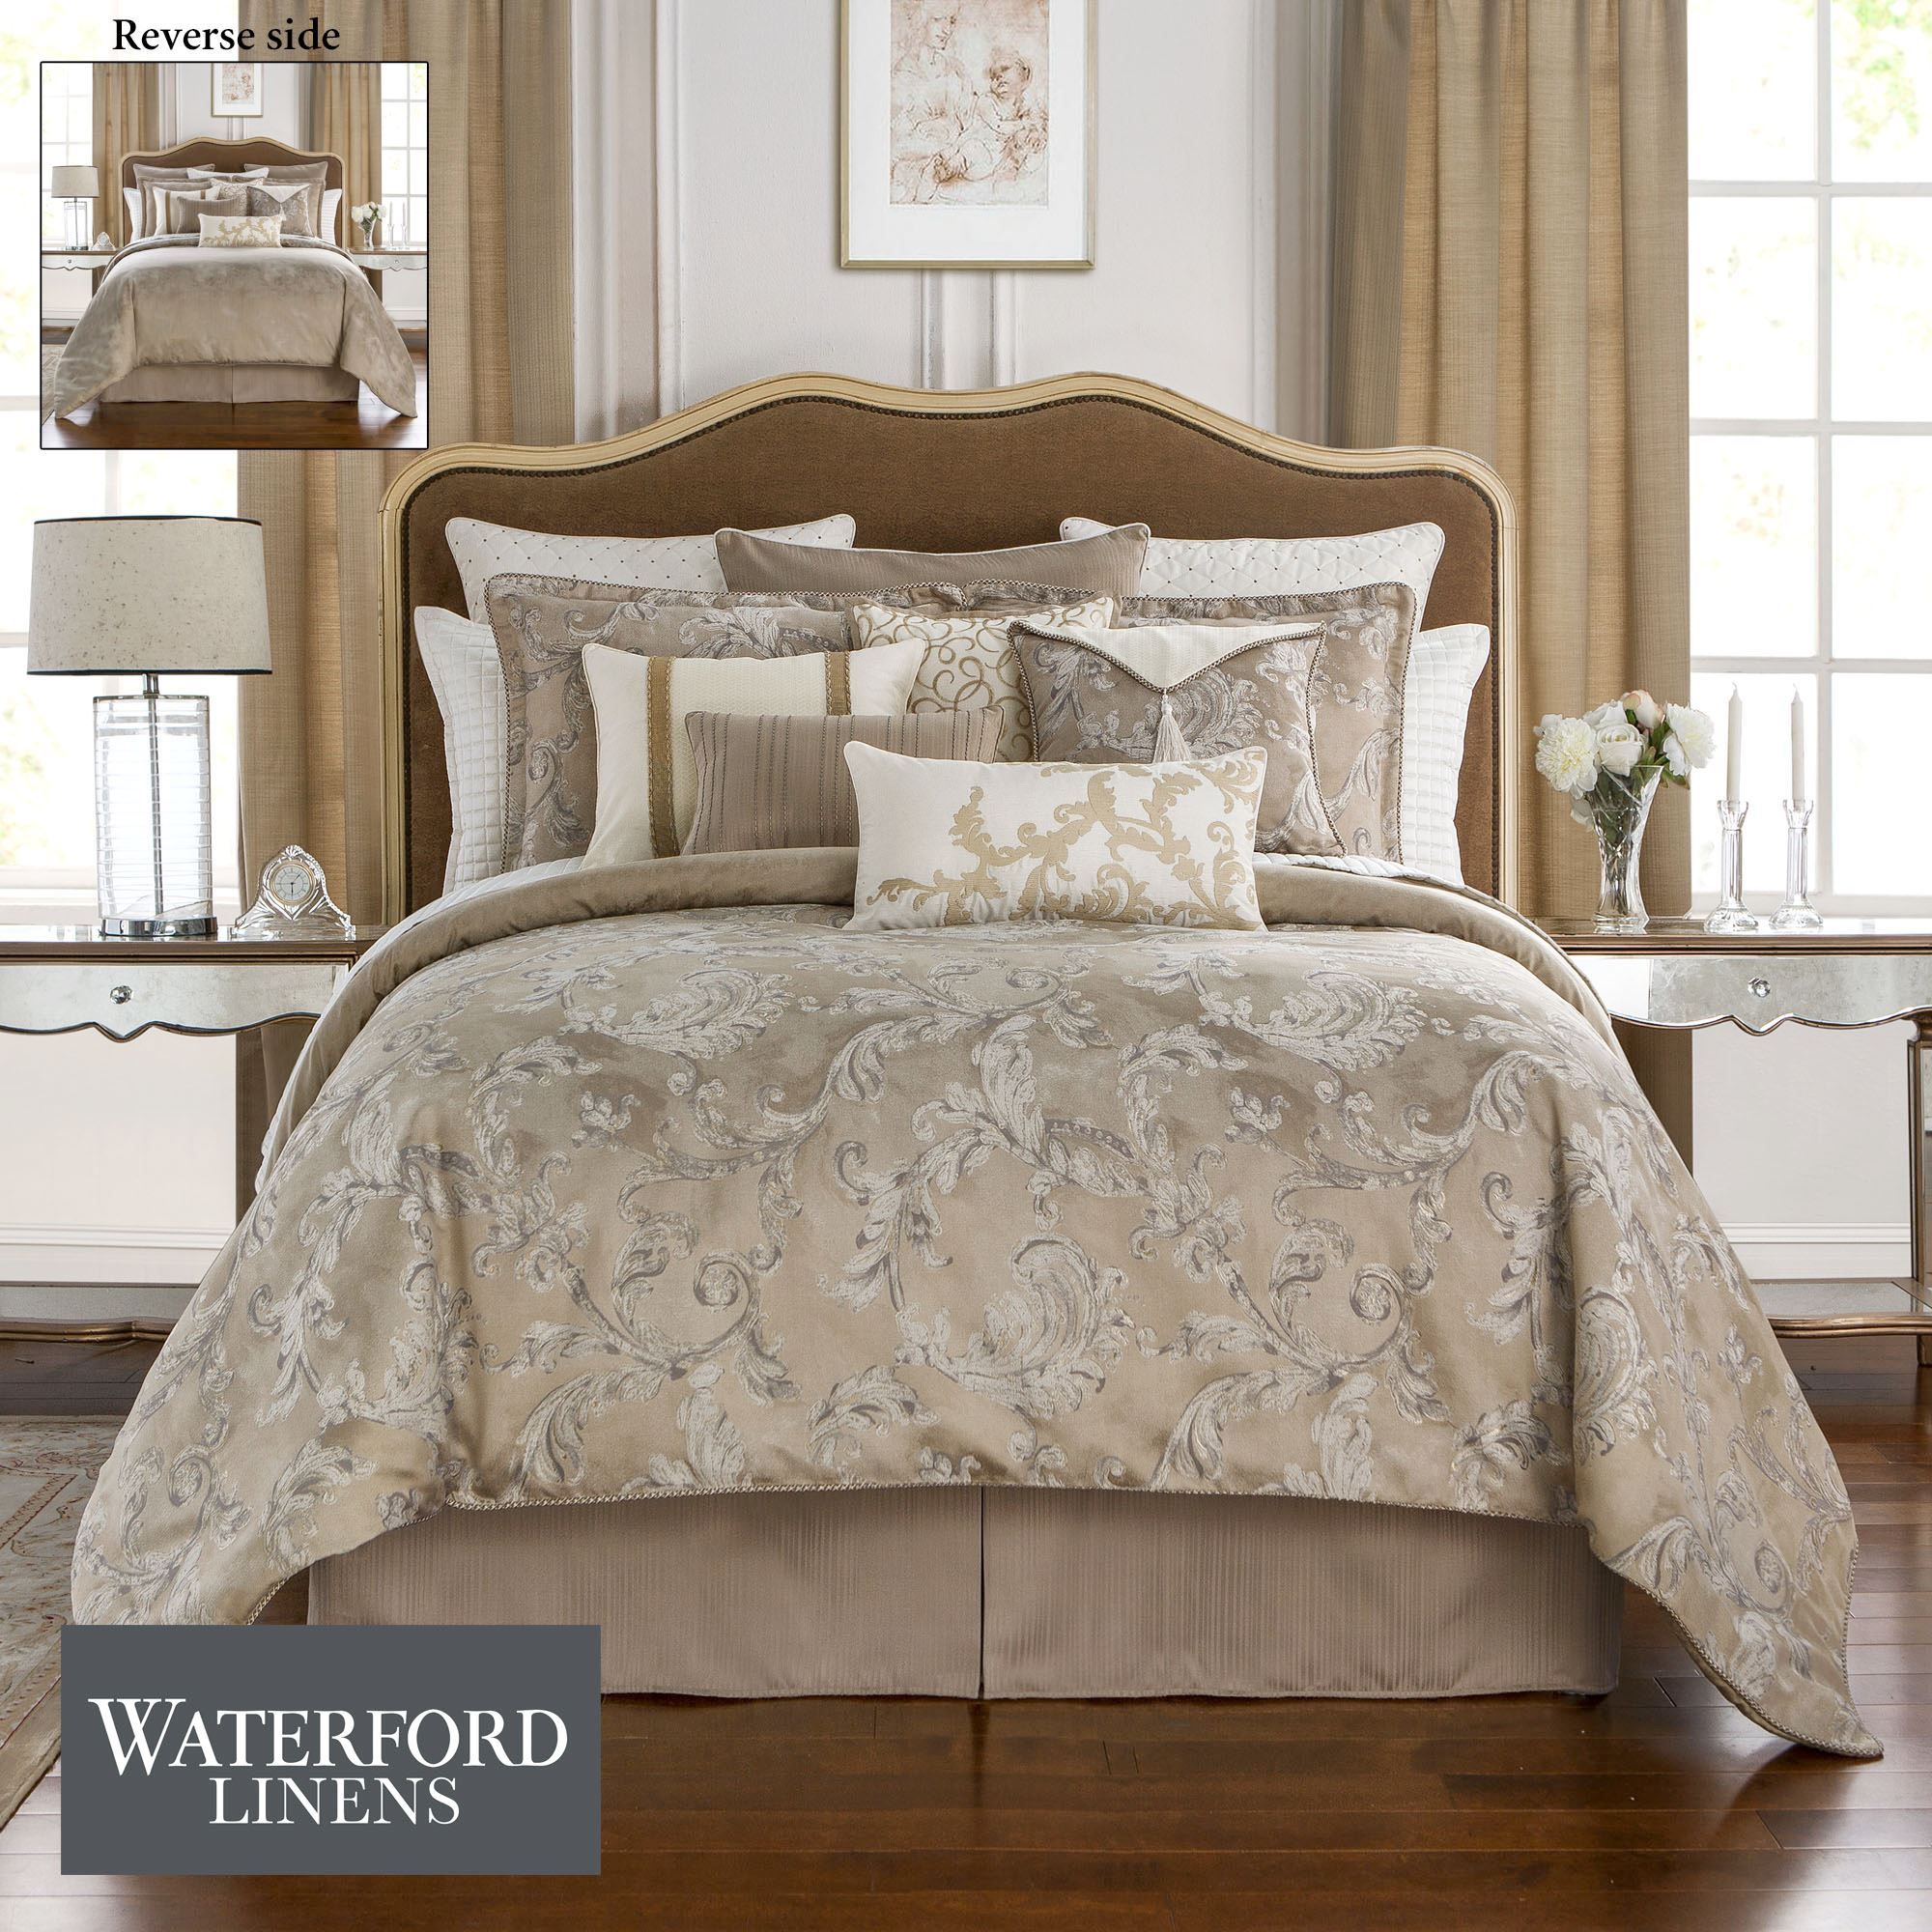 creative sets best for with waterford size set queen bedroom cheap design comforter charming